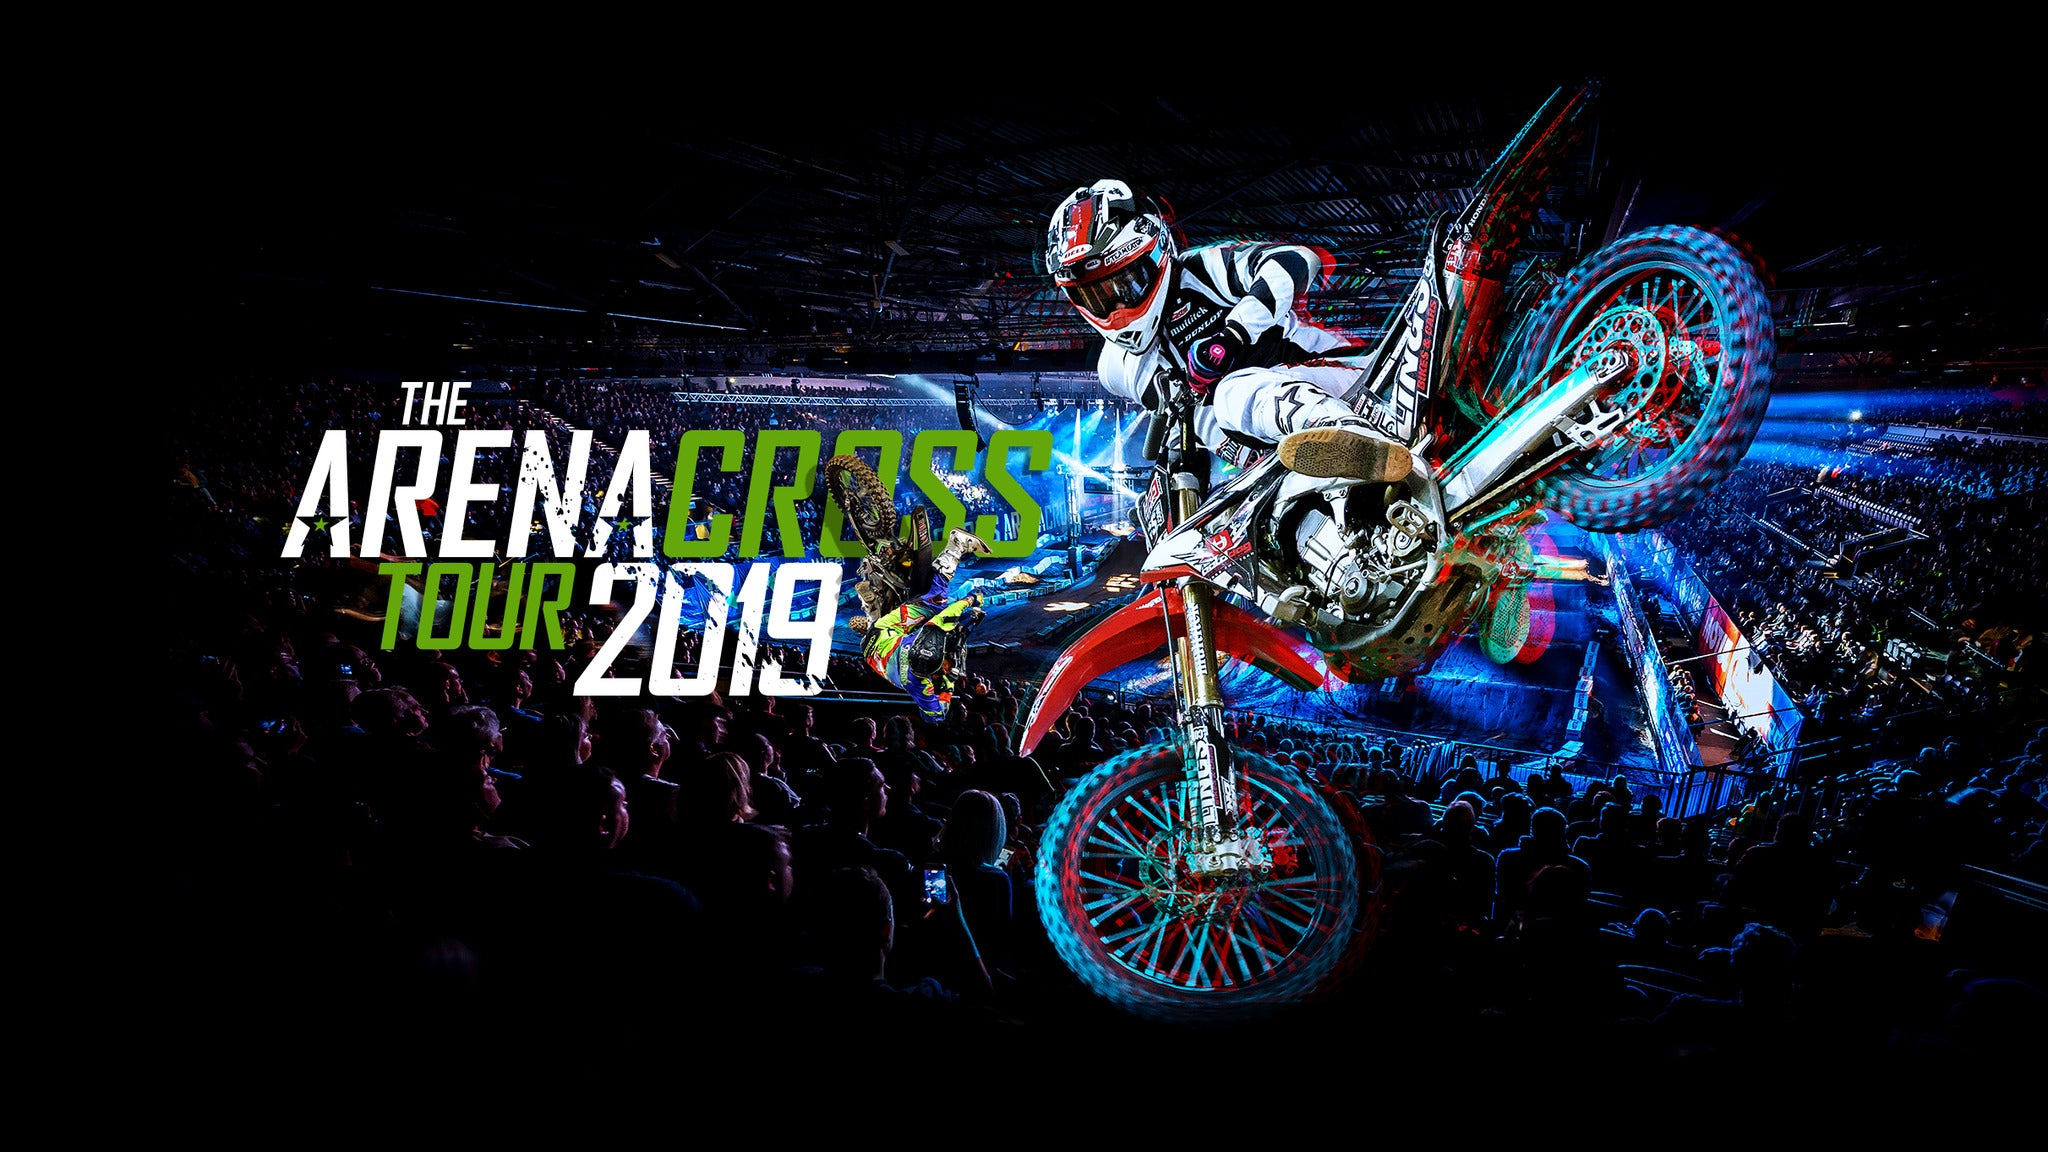 The Arenacross Tour - Saturday Night Genting Arena Seating Plan